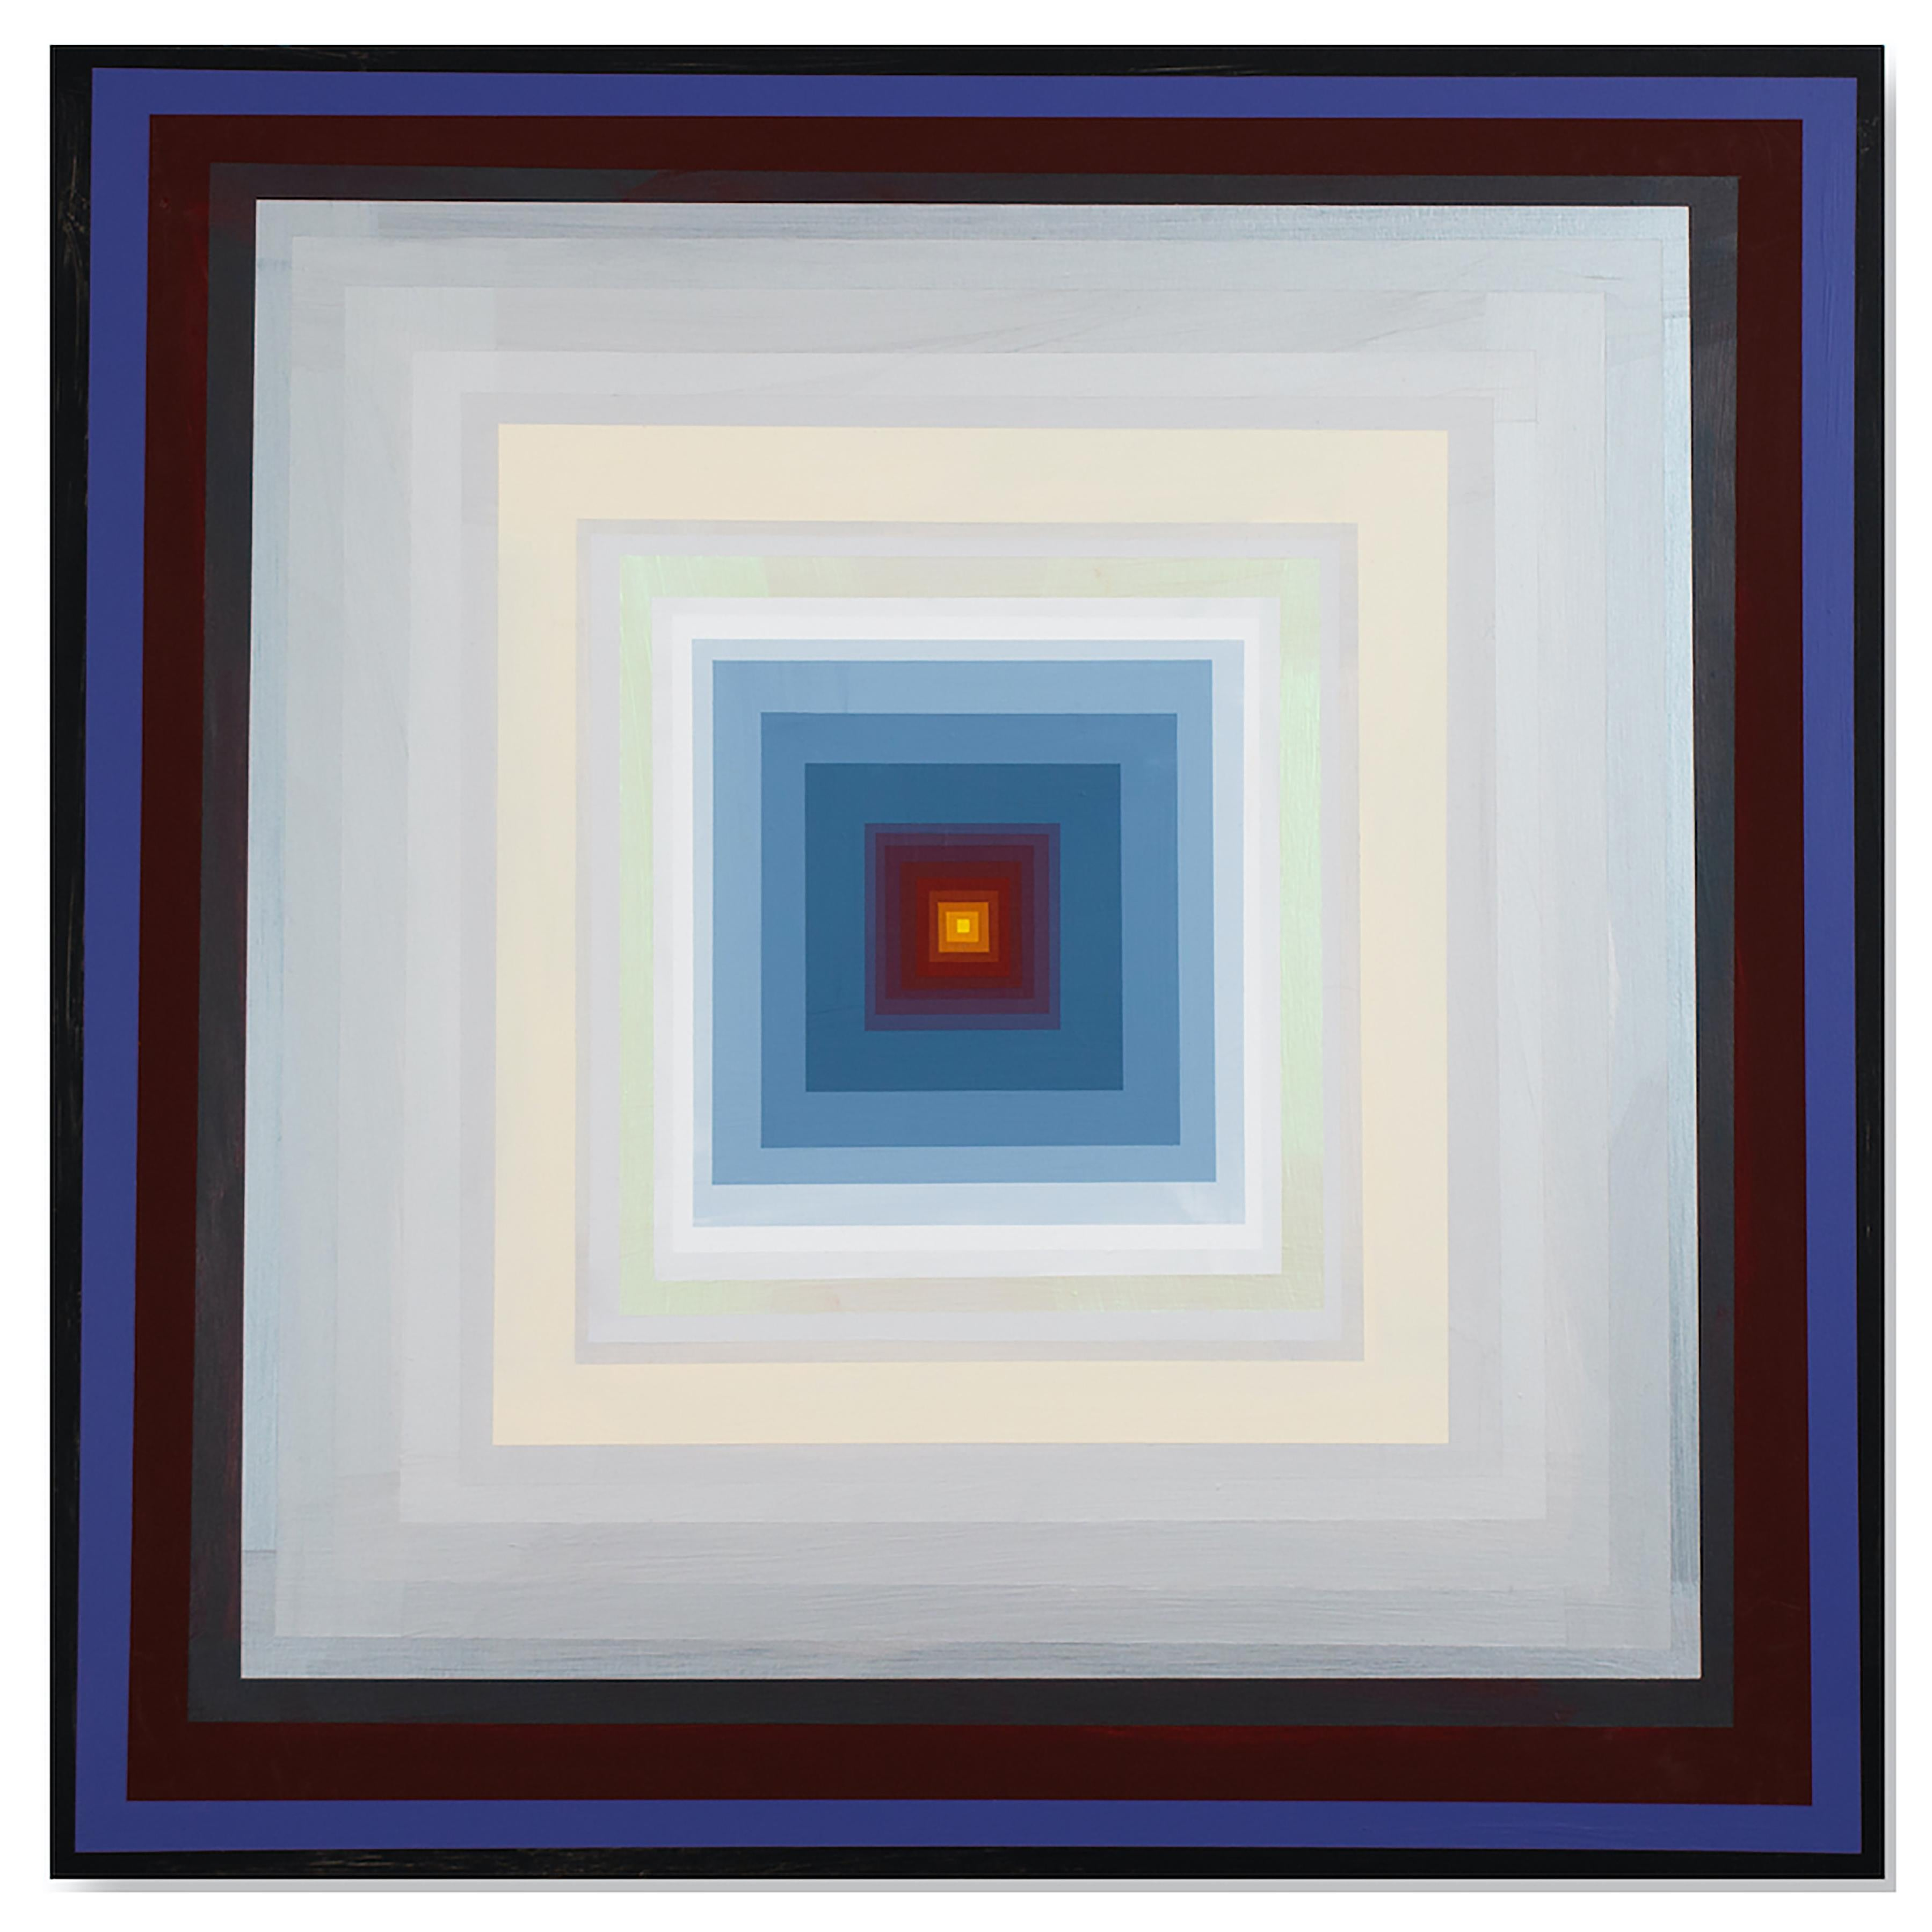 Gary Lang, CONCENTRICSQUAREFIVE, 2020, acrylic on panel, geometric abstraction